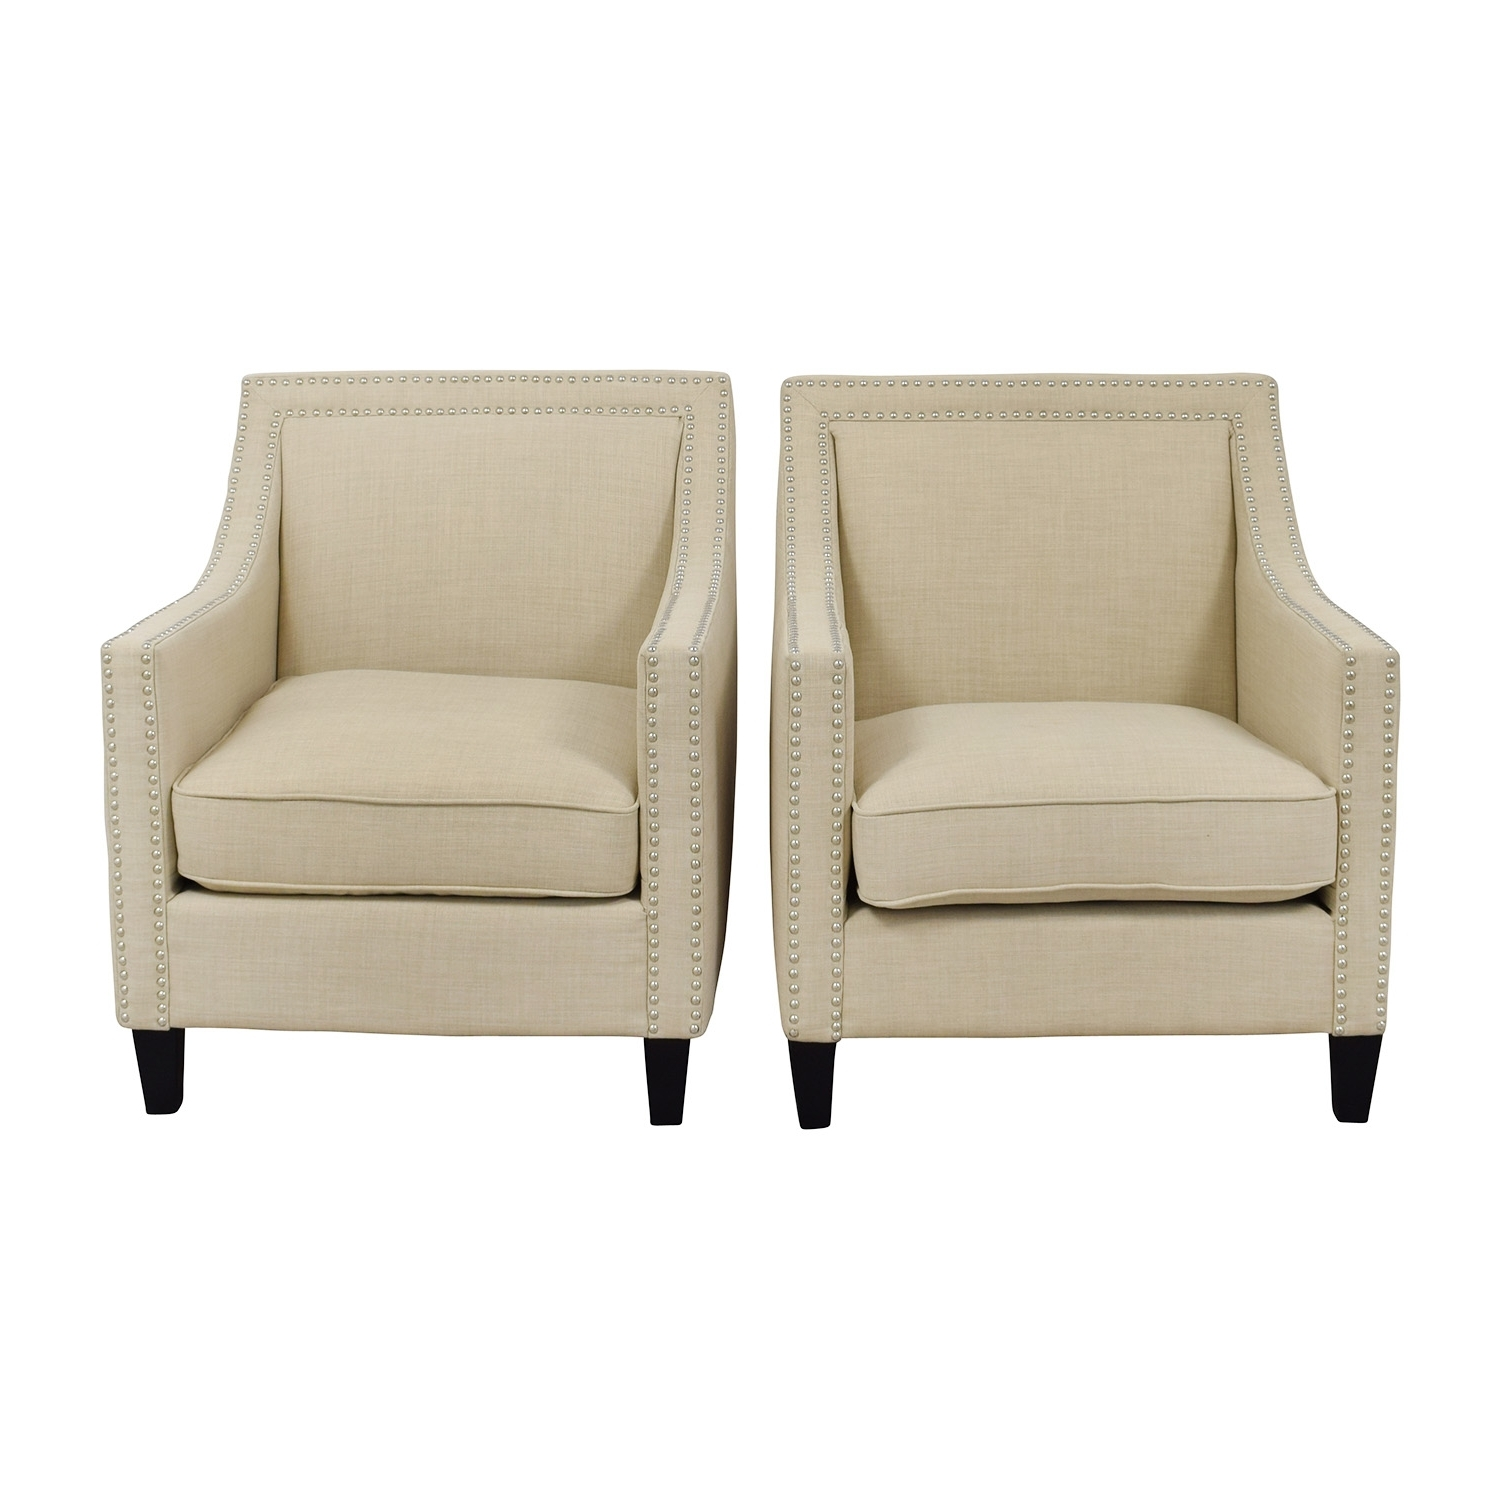 [%67% Off – Studded Beige Sofa Arm Chairs / Chairs Pertaining To Widely Used Sofa Arm Chairs|Sofa Arm Chairs In Newest 67% Off – Studded Beige Sofa Arm Chairs / Chairs|Famous Sofa Arm Chairs Regarding 67% Off – Studded Beige Sofa Arm Chairs / Chairs|Popular 67% Off – Studded Beige Sofa Arm Chairs / Chairs Regarding Sofa Arm Chairs%] (View 12 of 15)